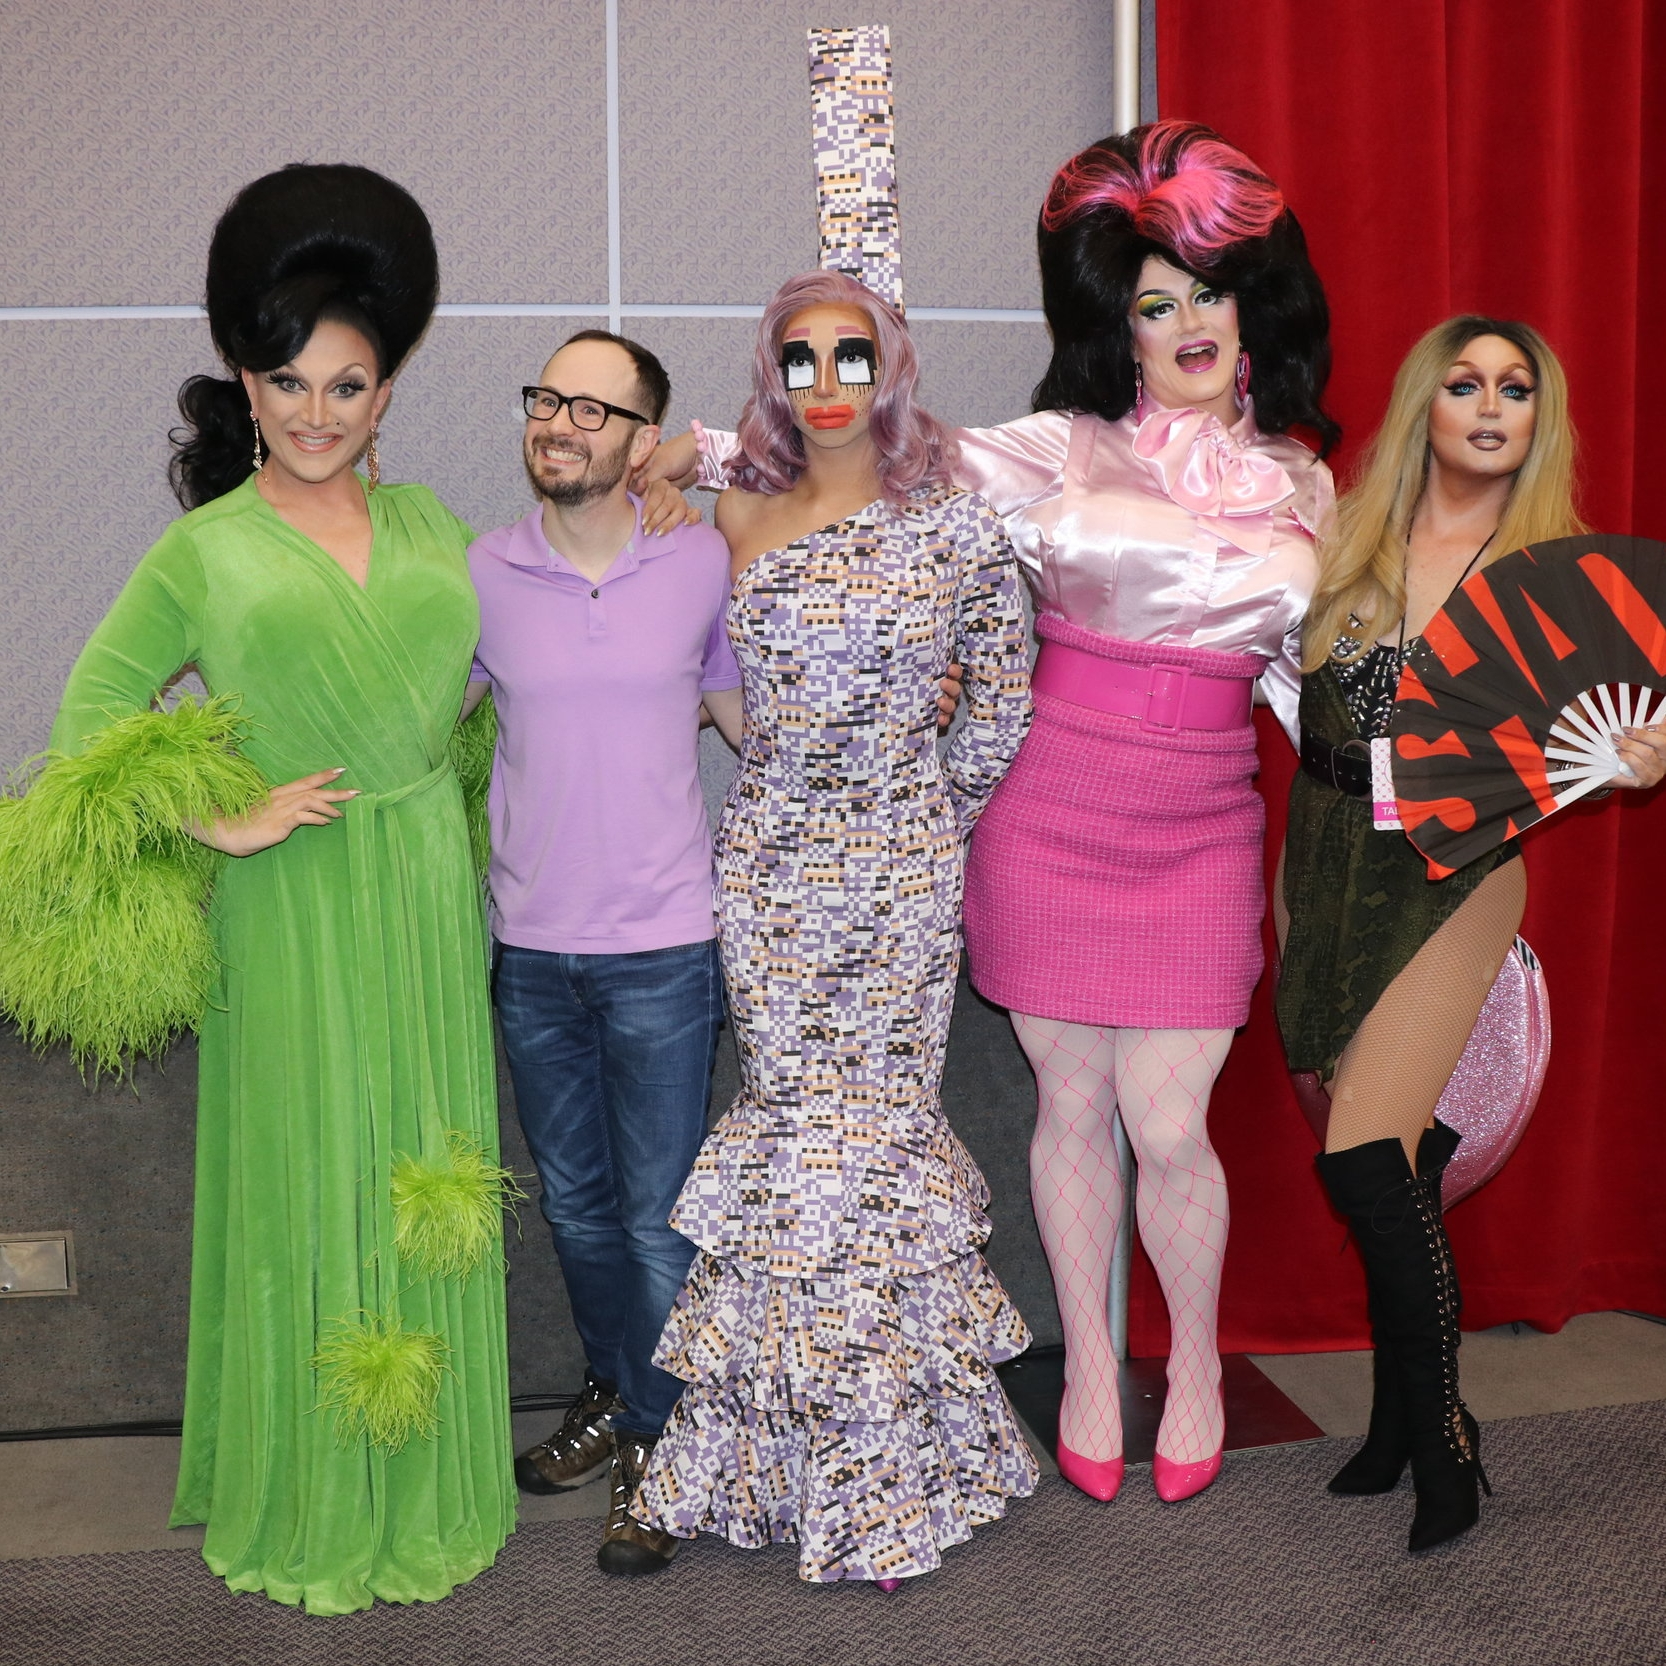 Dungeons and Drag Queens!